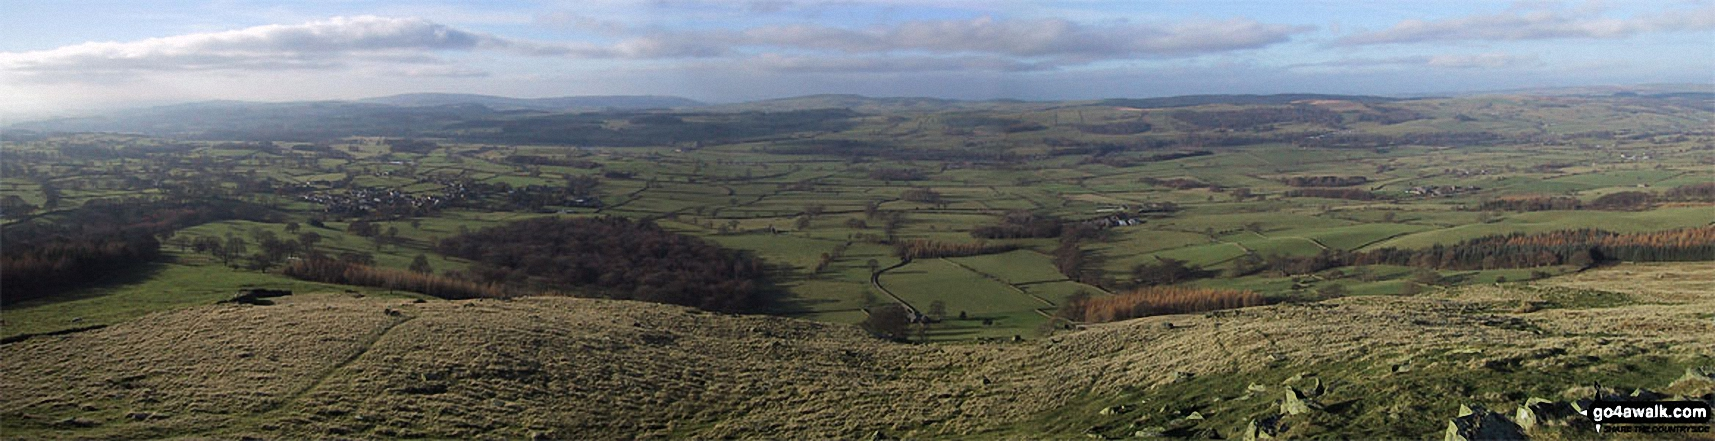 The River Lune Valley from Castle Knott summit cairn